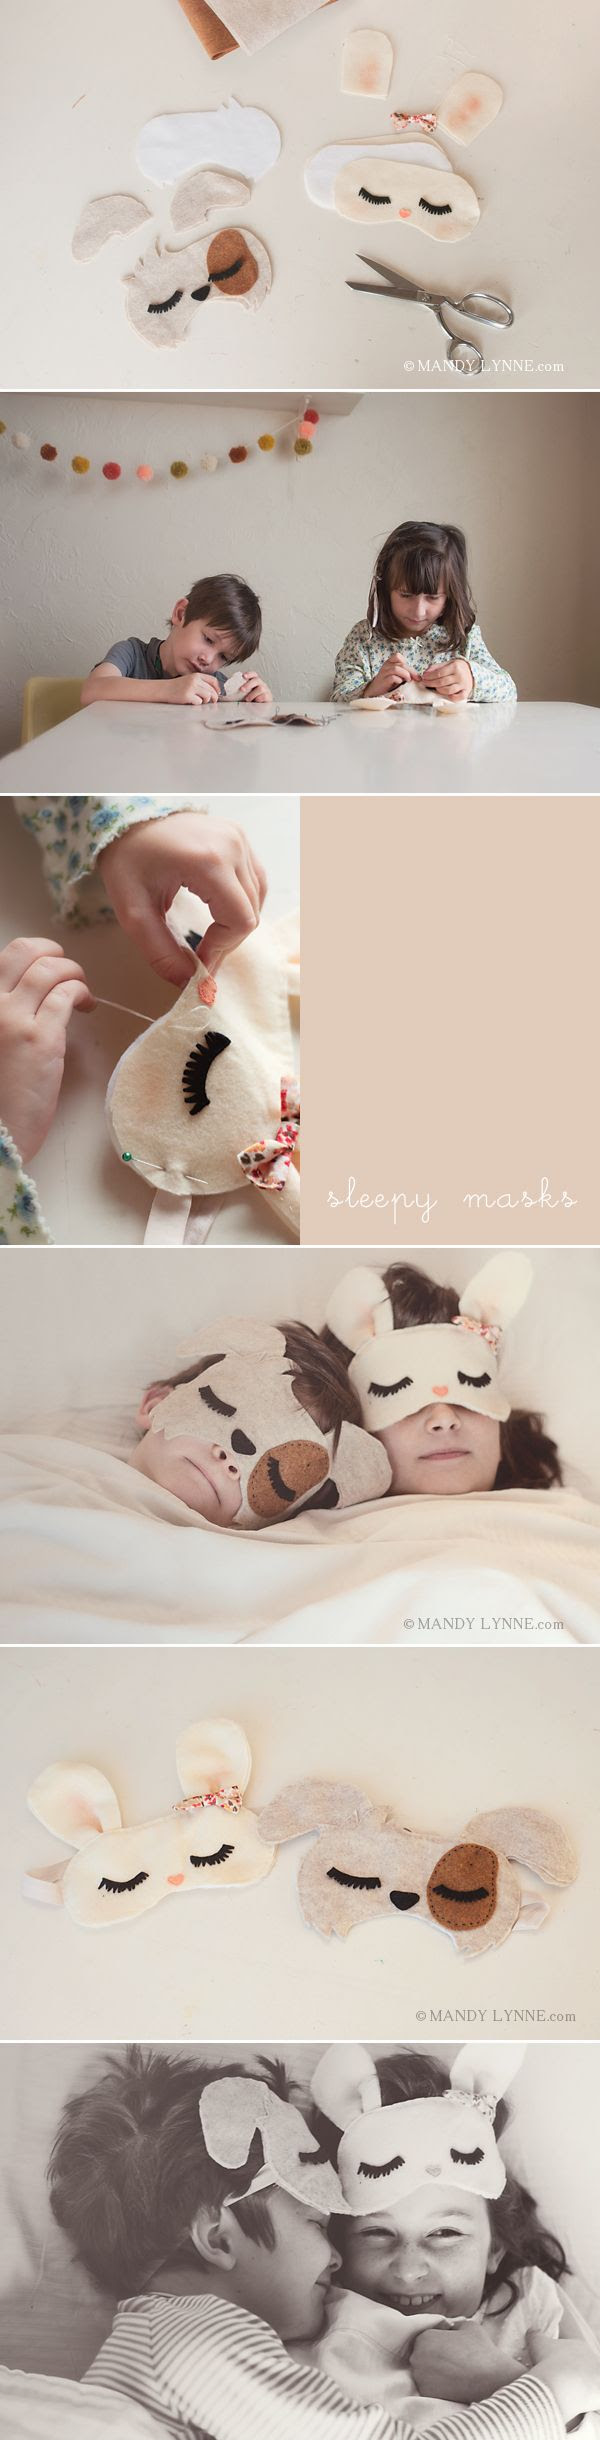 DIY #Sleep #masks | mandylynne